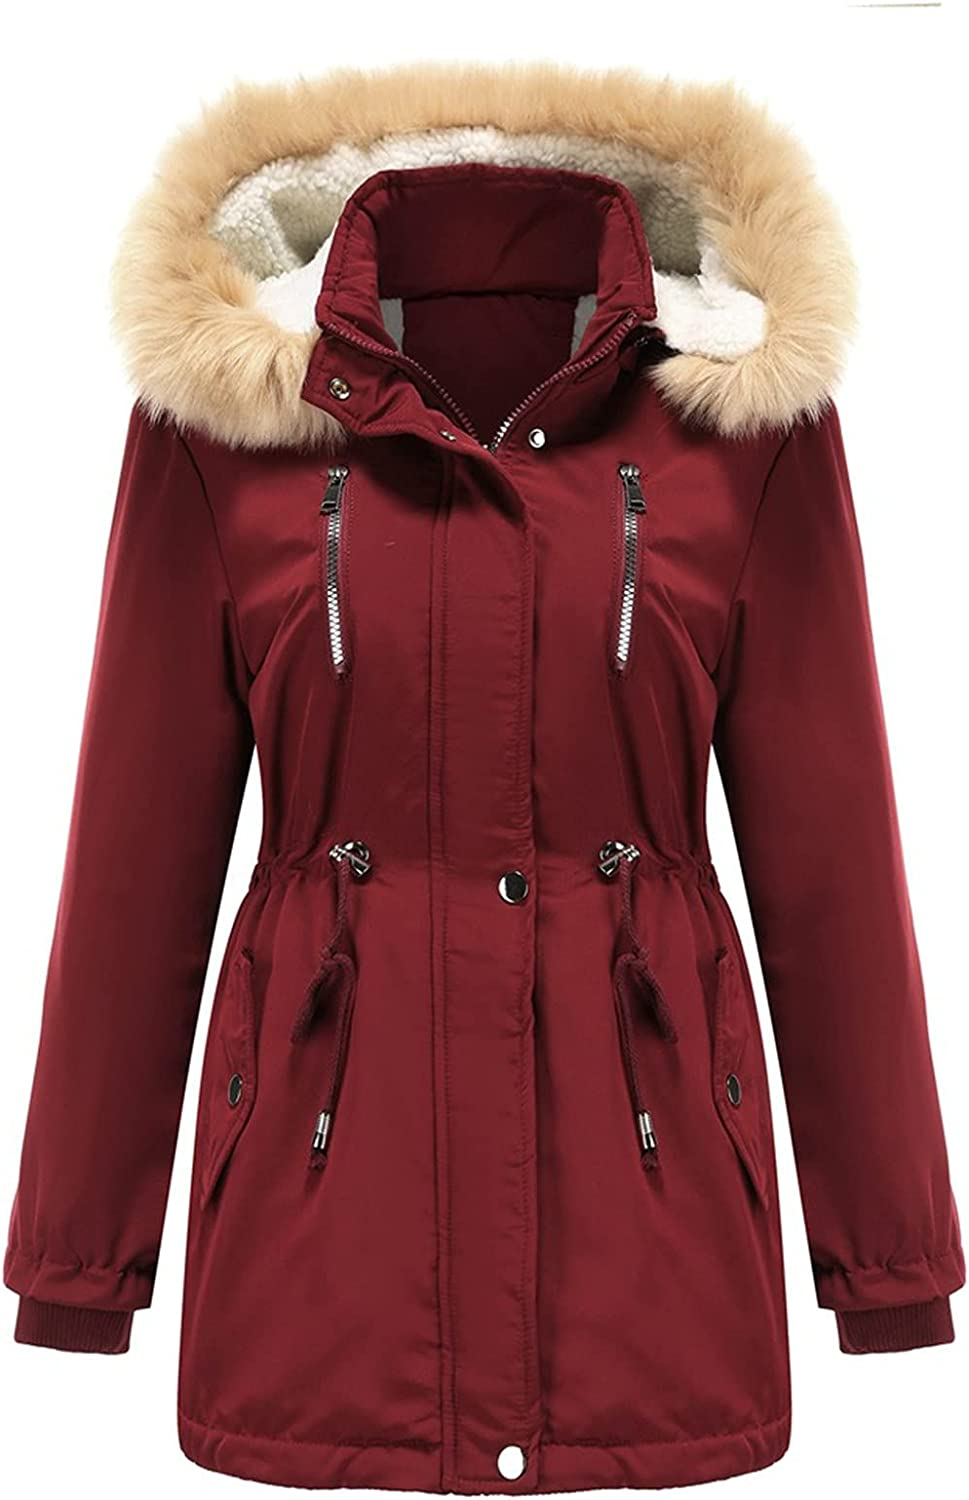 SHYSHY Women's Faux Fur Parka Outerwear Plus Size Winter Cotton Warm Overcoat Ladies Mid Length Thickened Jacket